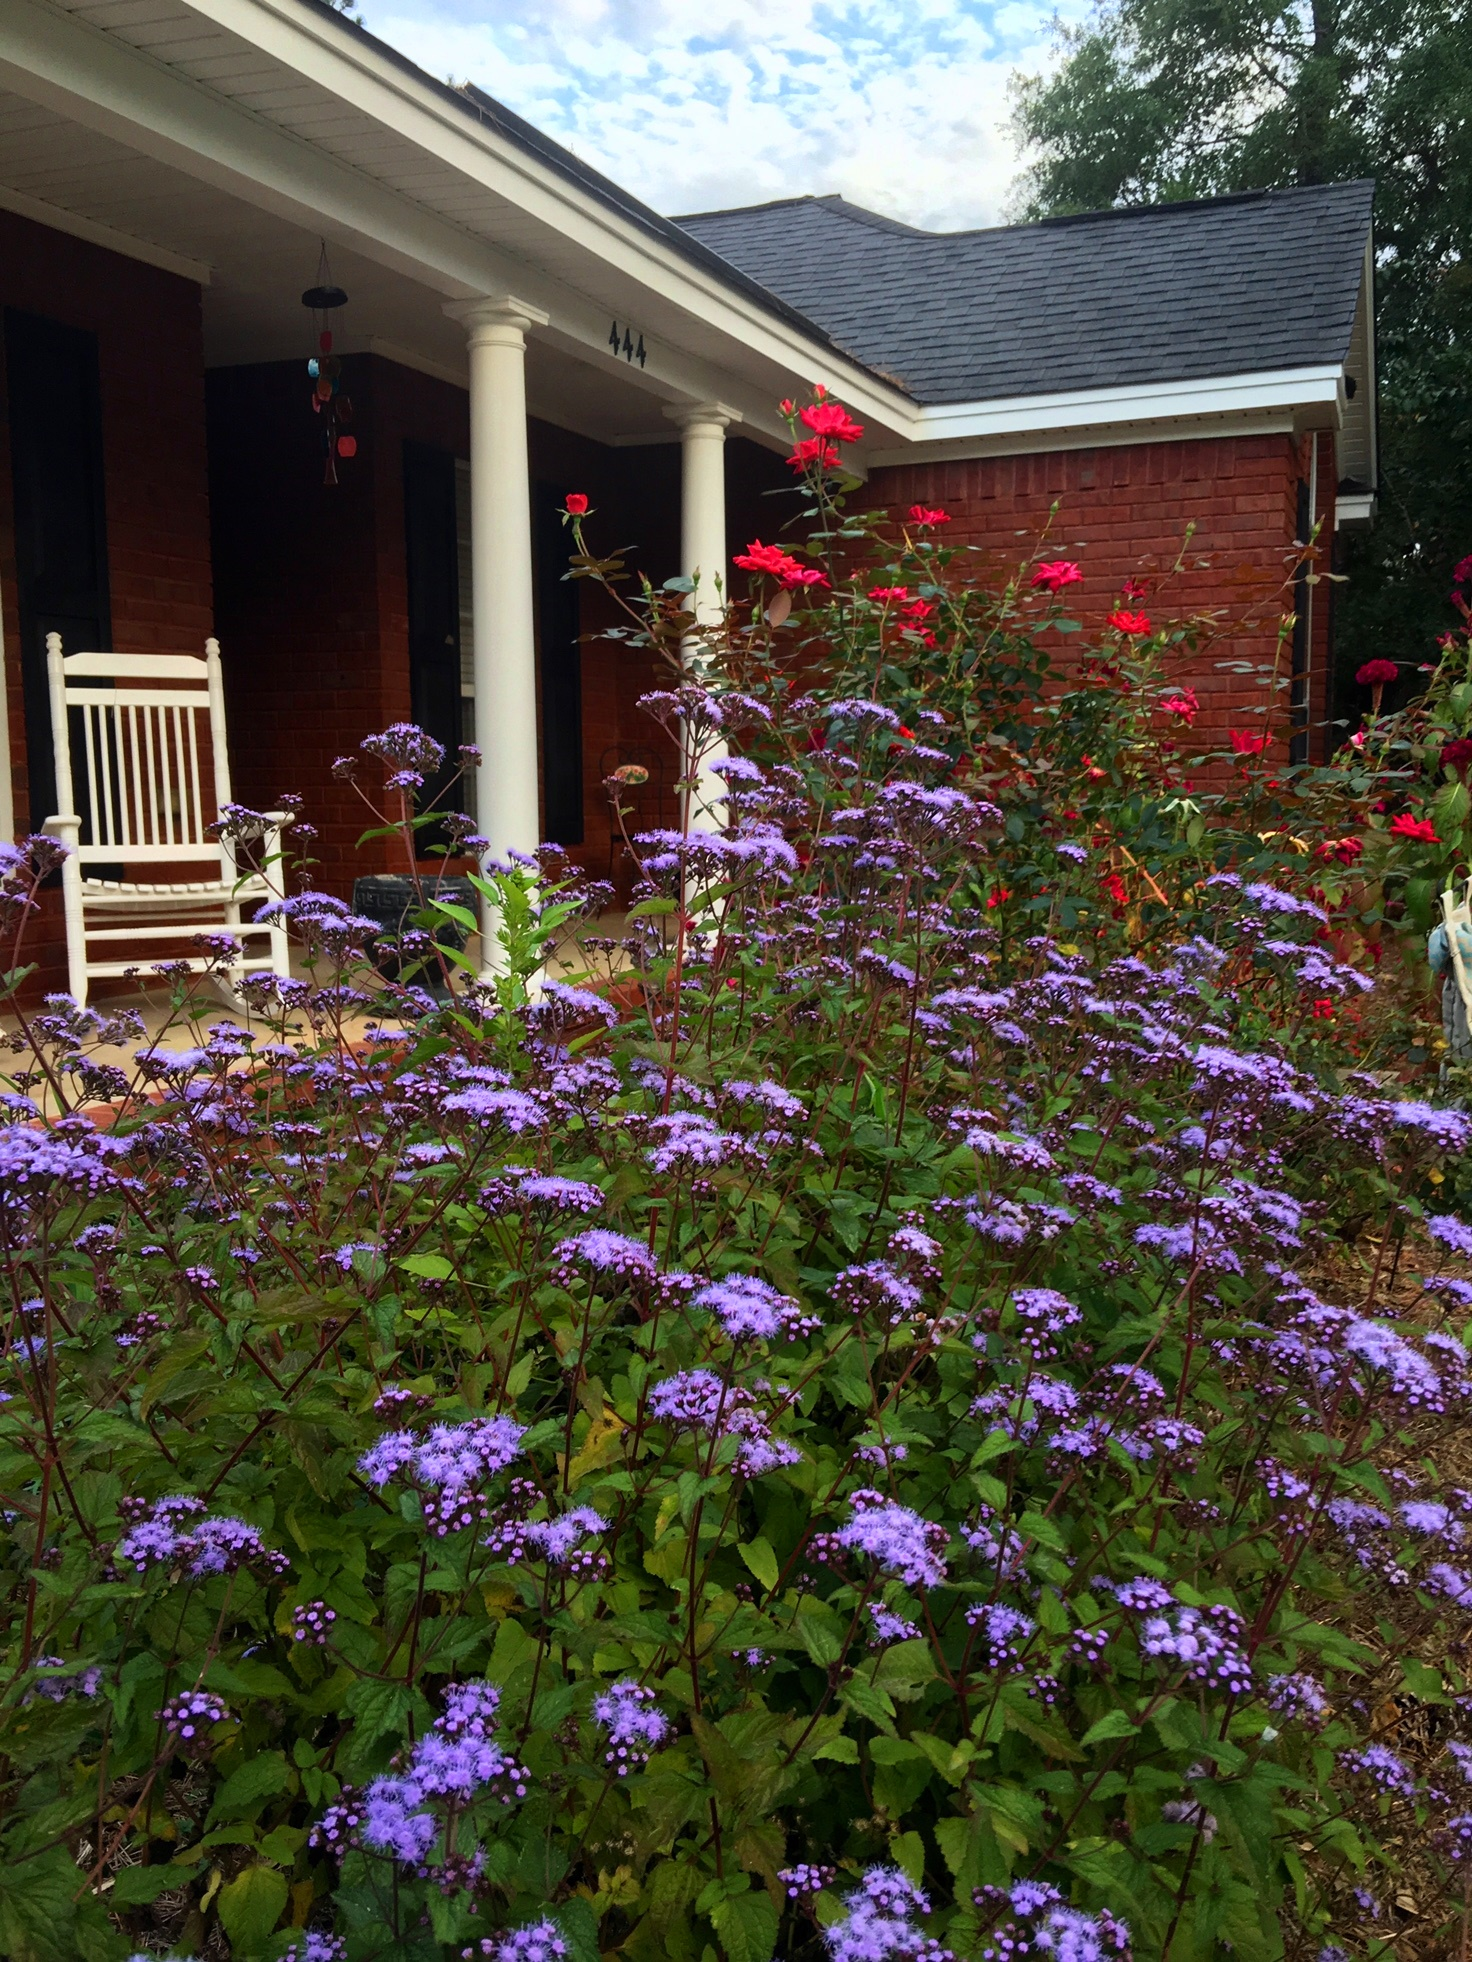 Mistflowers (foreground) and knockout roses create a cottage garden look in this landscape.